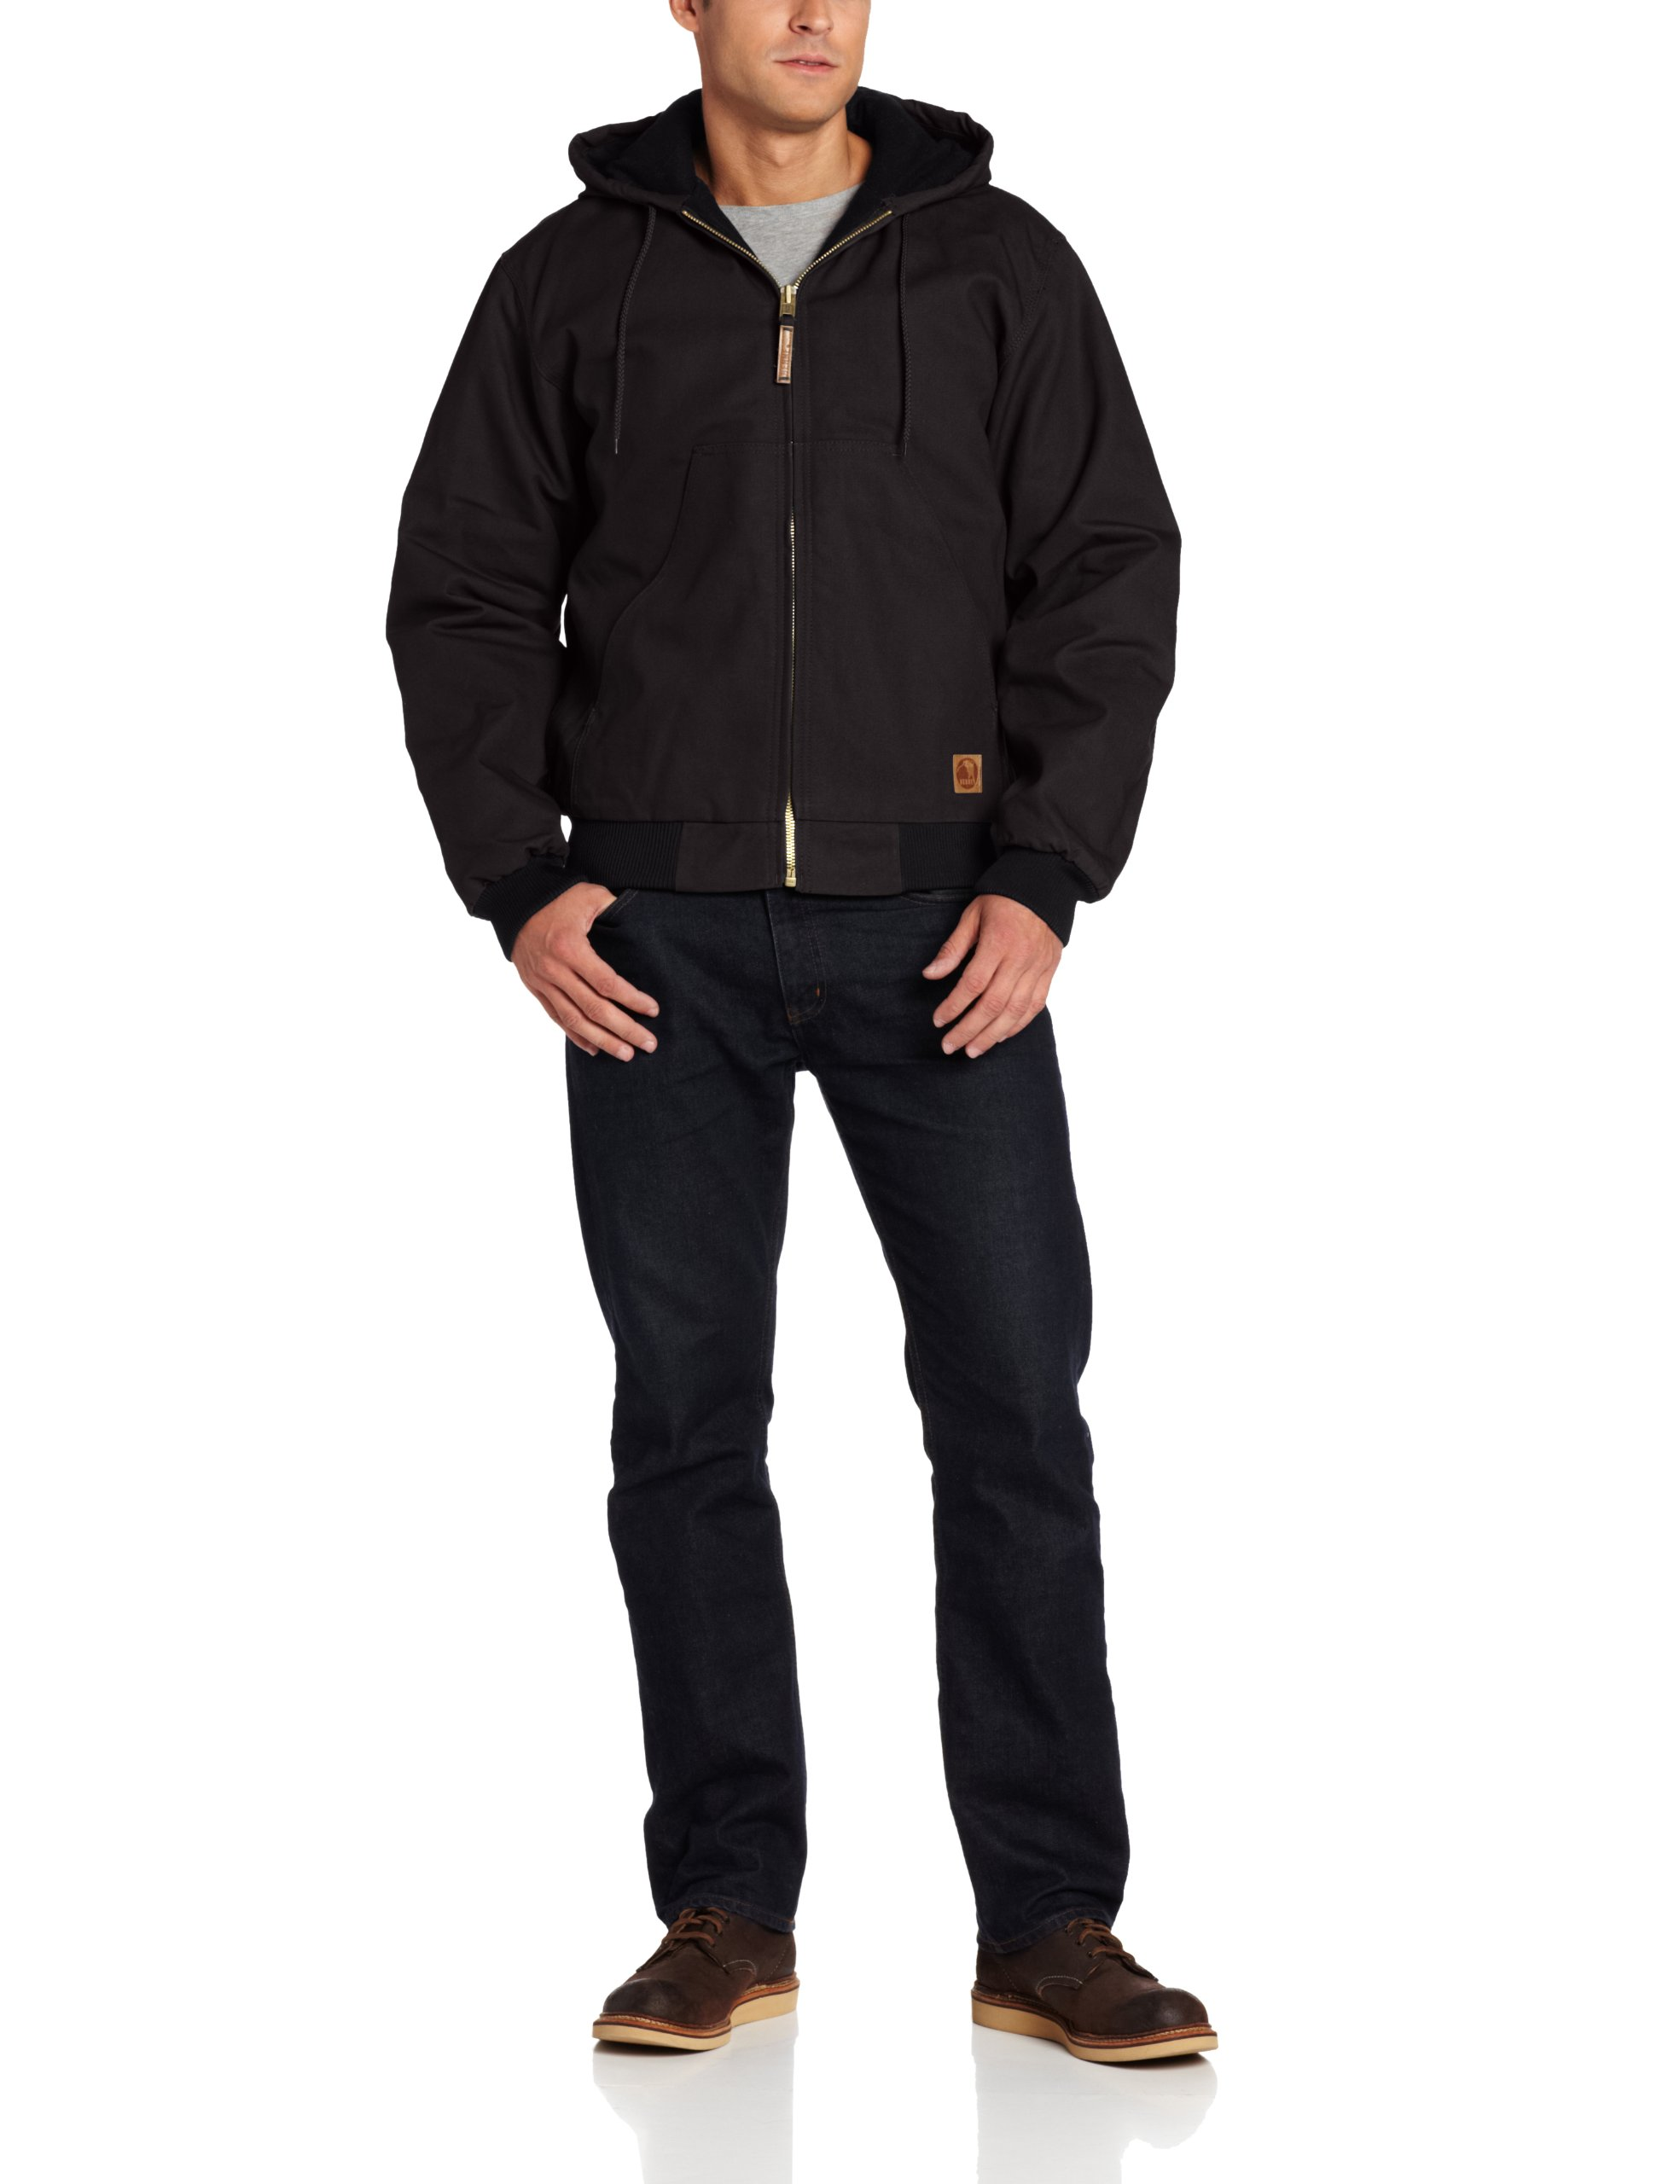 Berne Men's Big-Tall Original Hooded Jacket, Black, 5X-Large/Tall